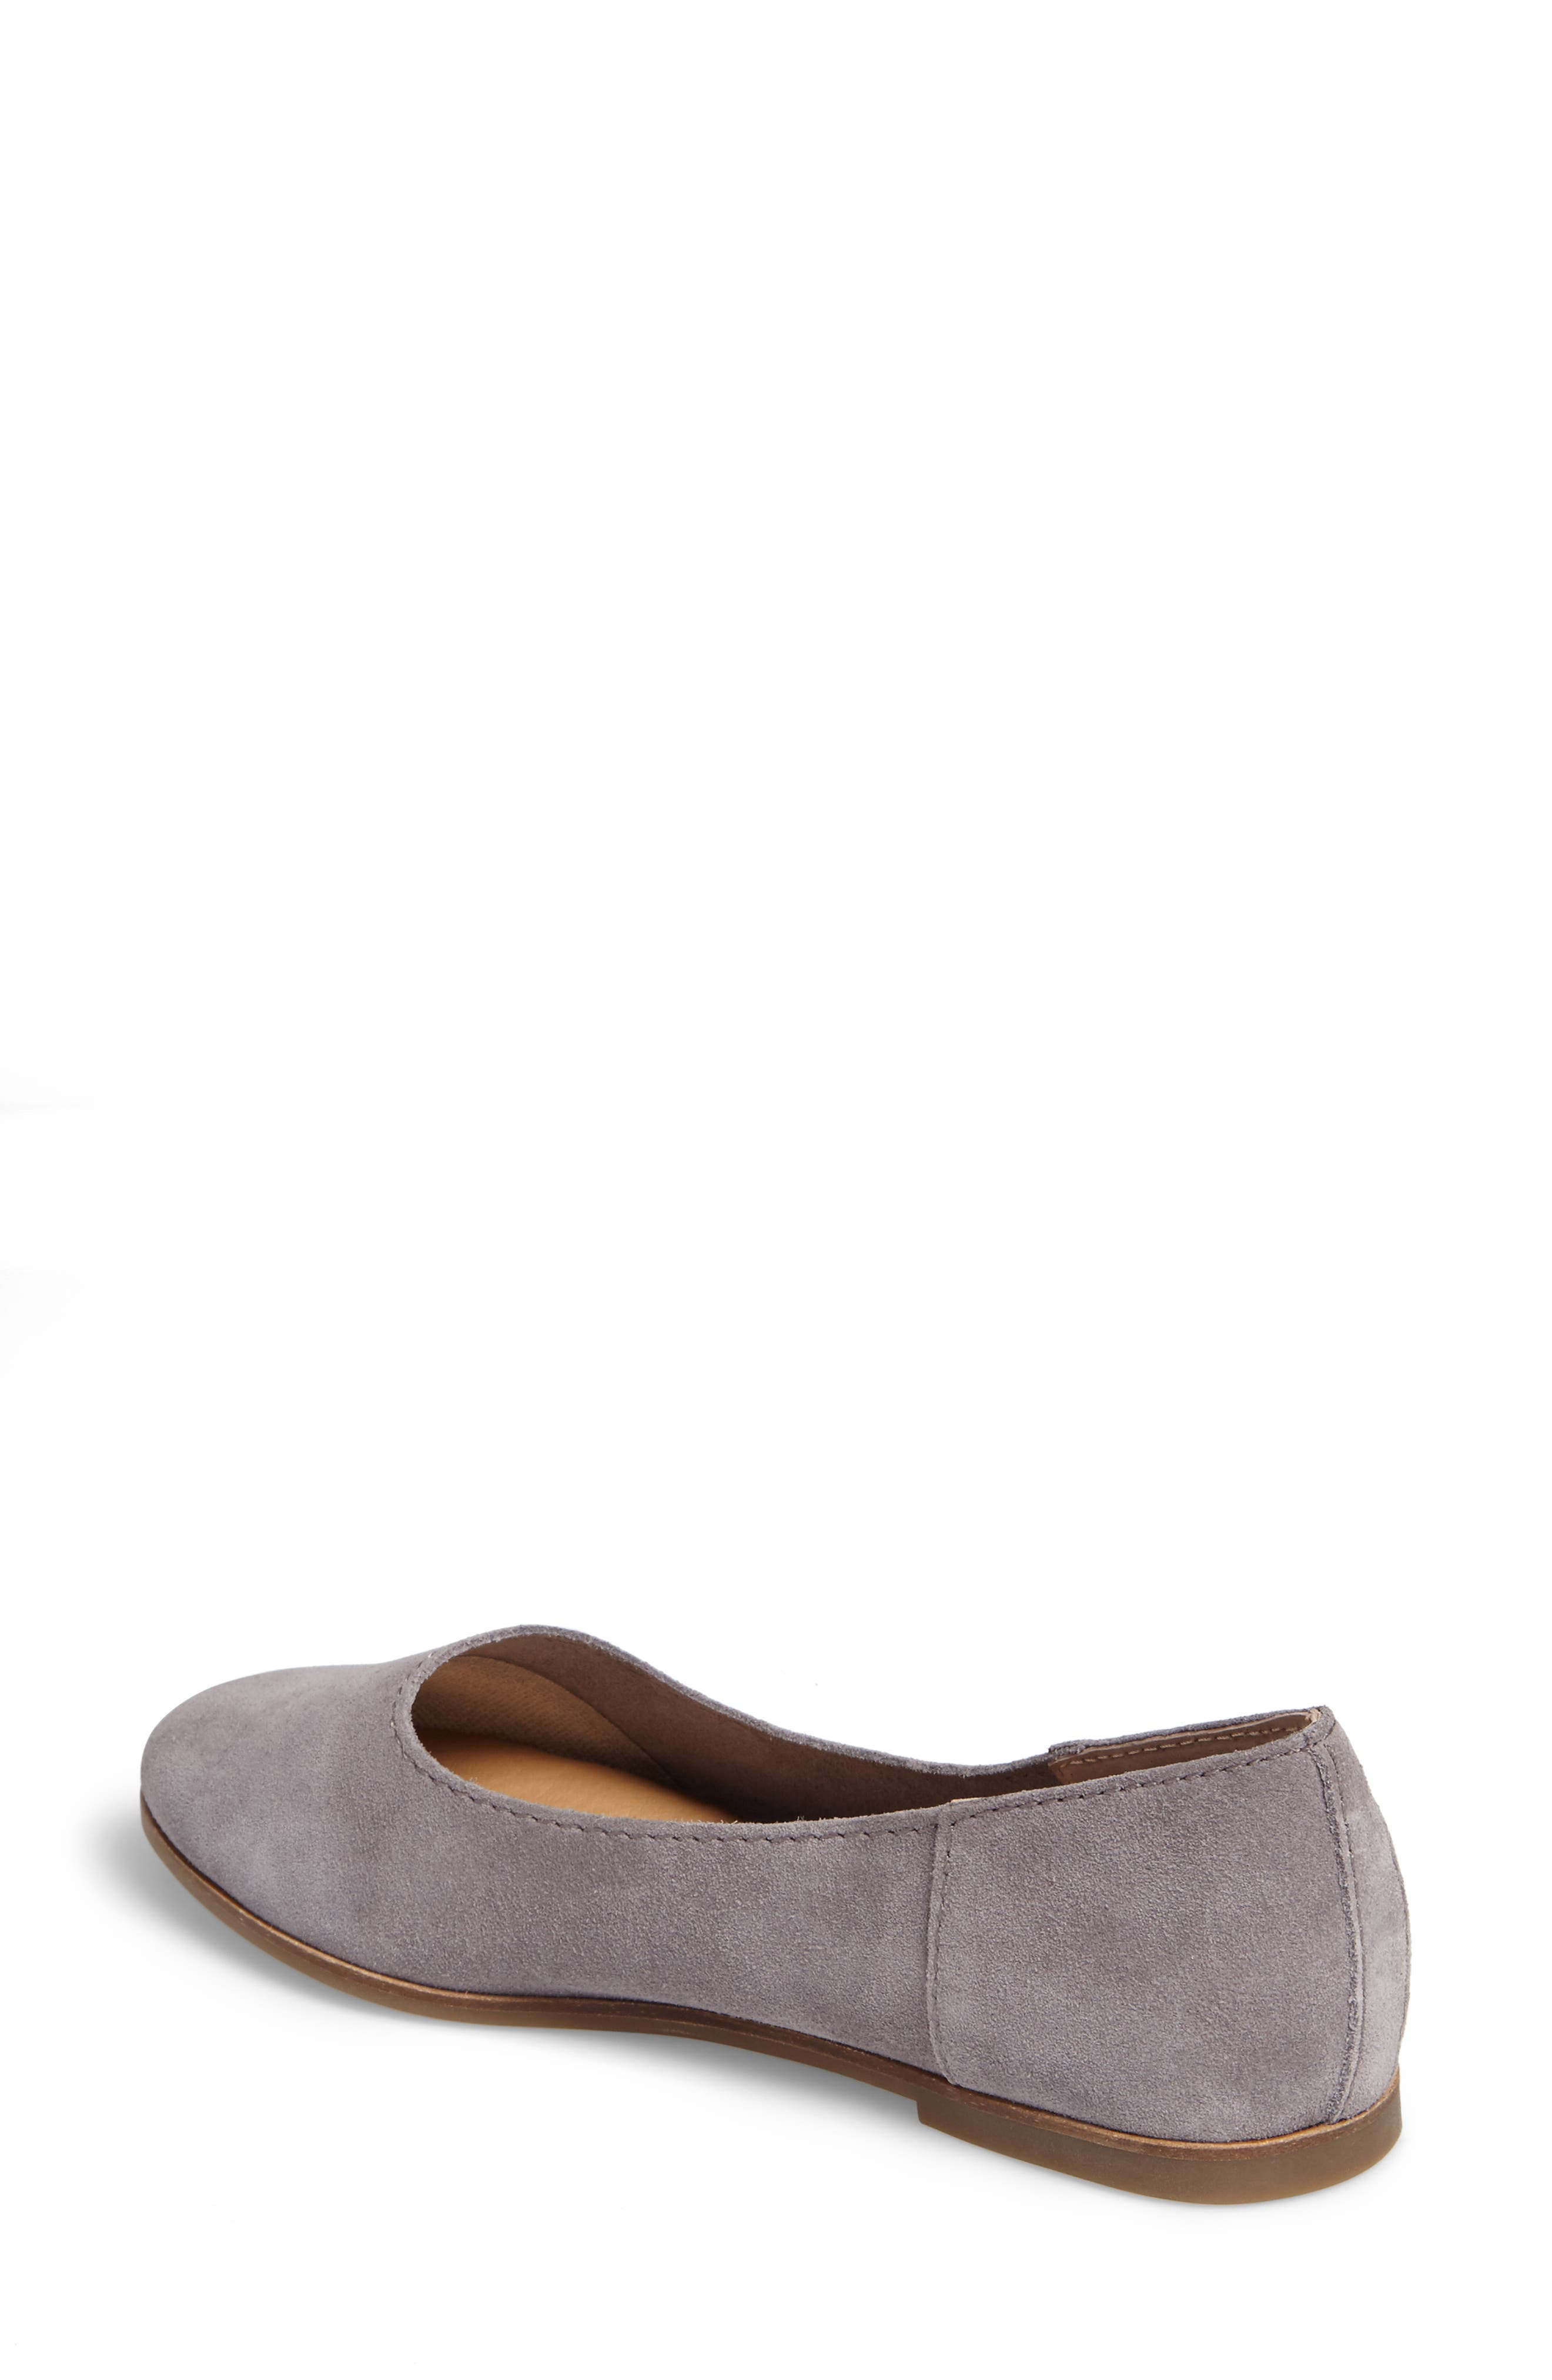 Calandra Flat,                             Alternate thumbnail 2, color,                             Steel Grey Suede